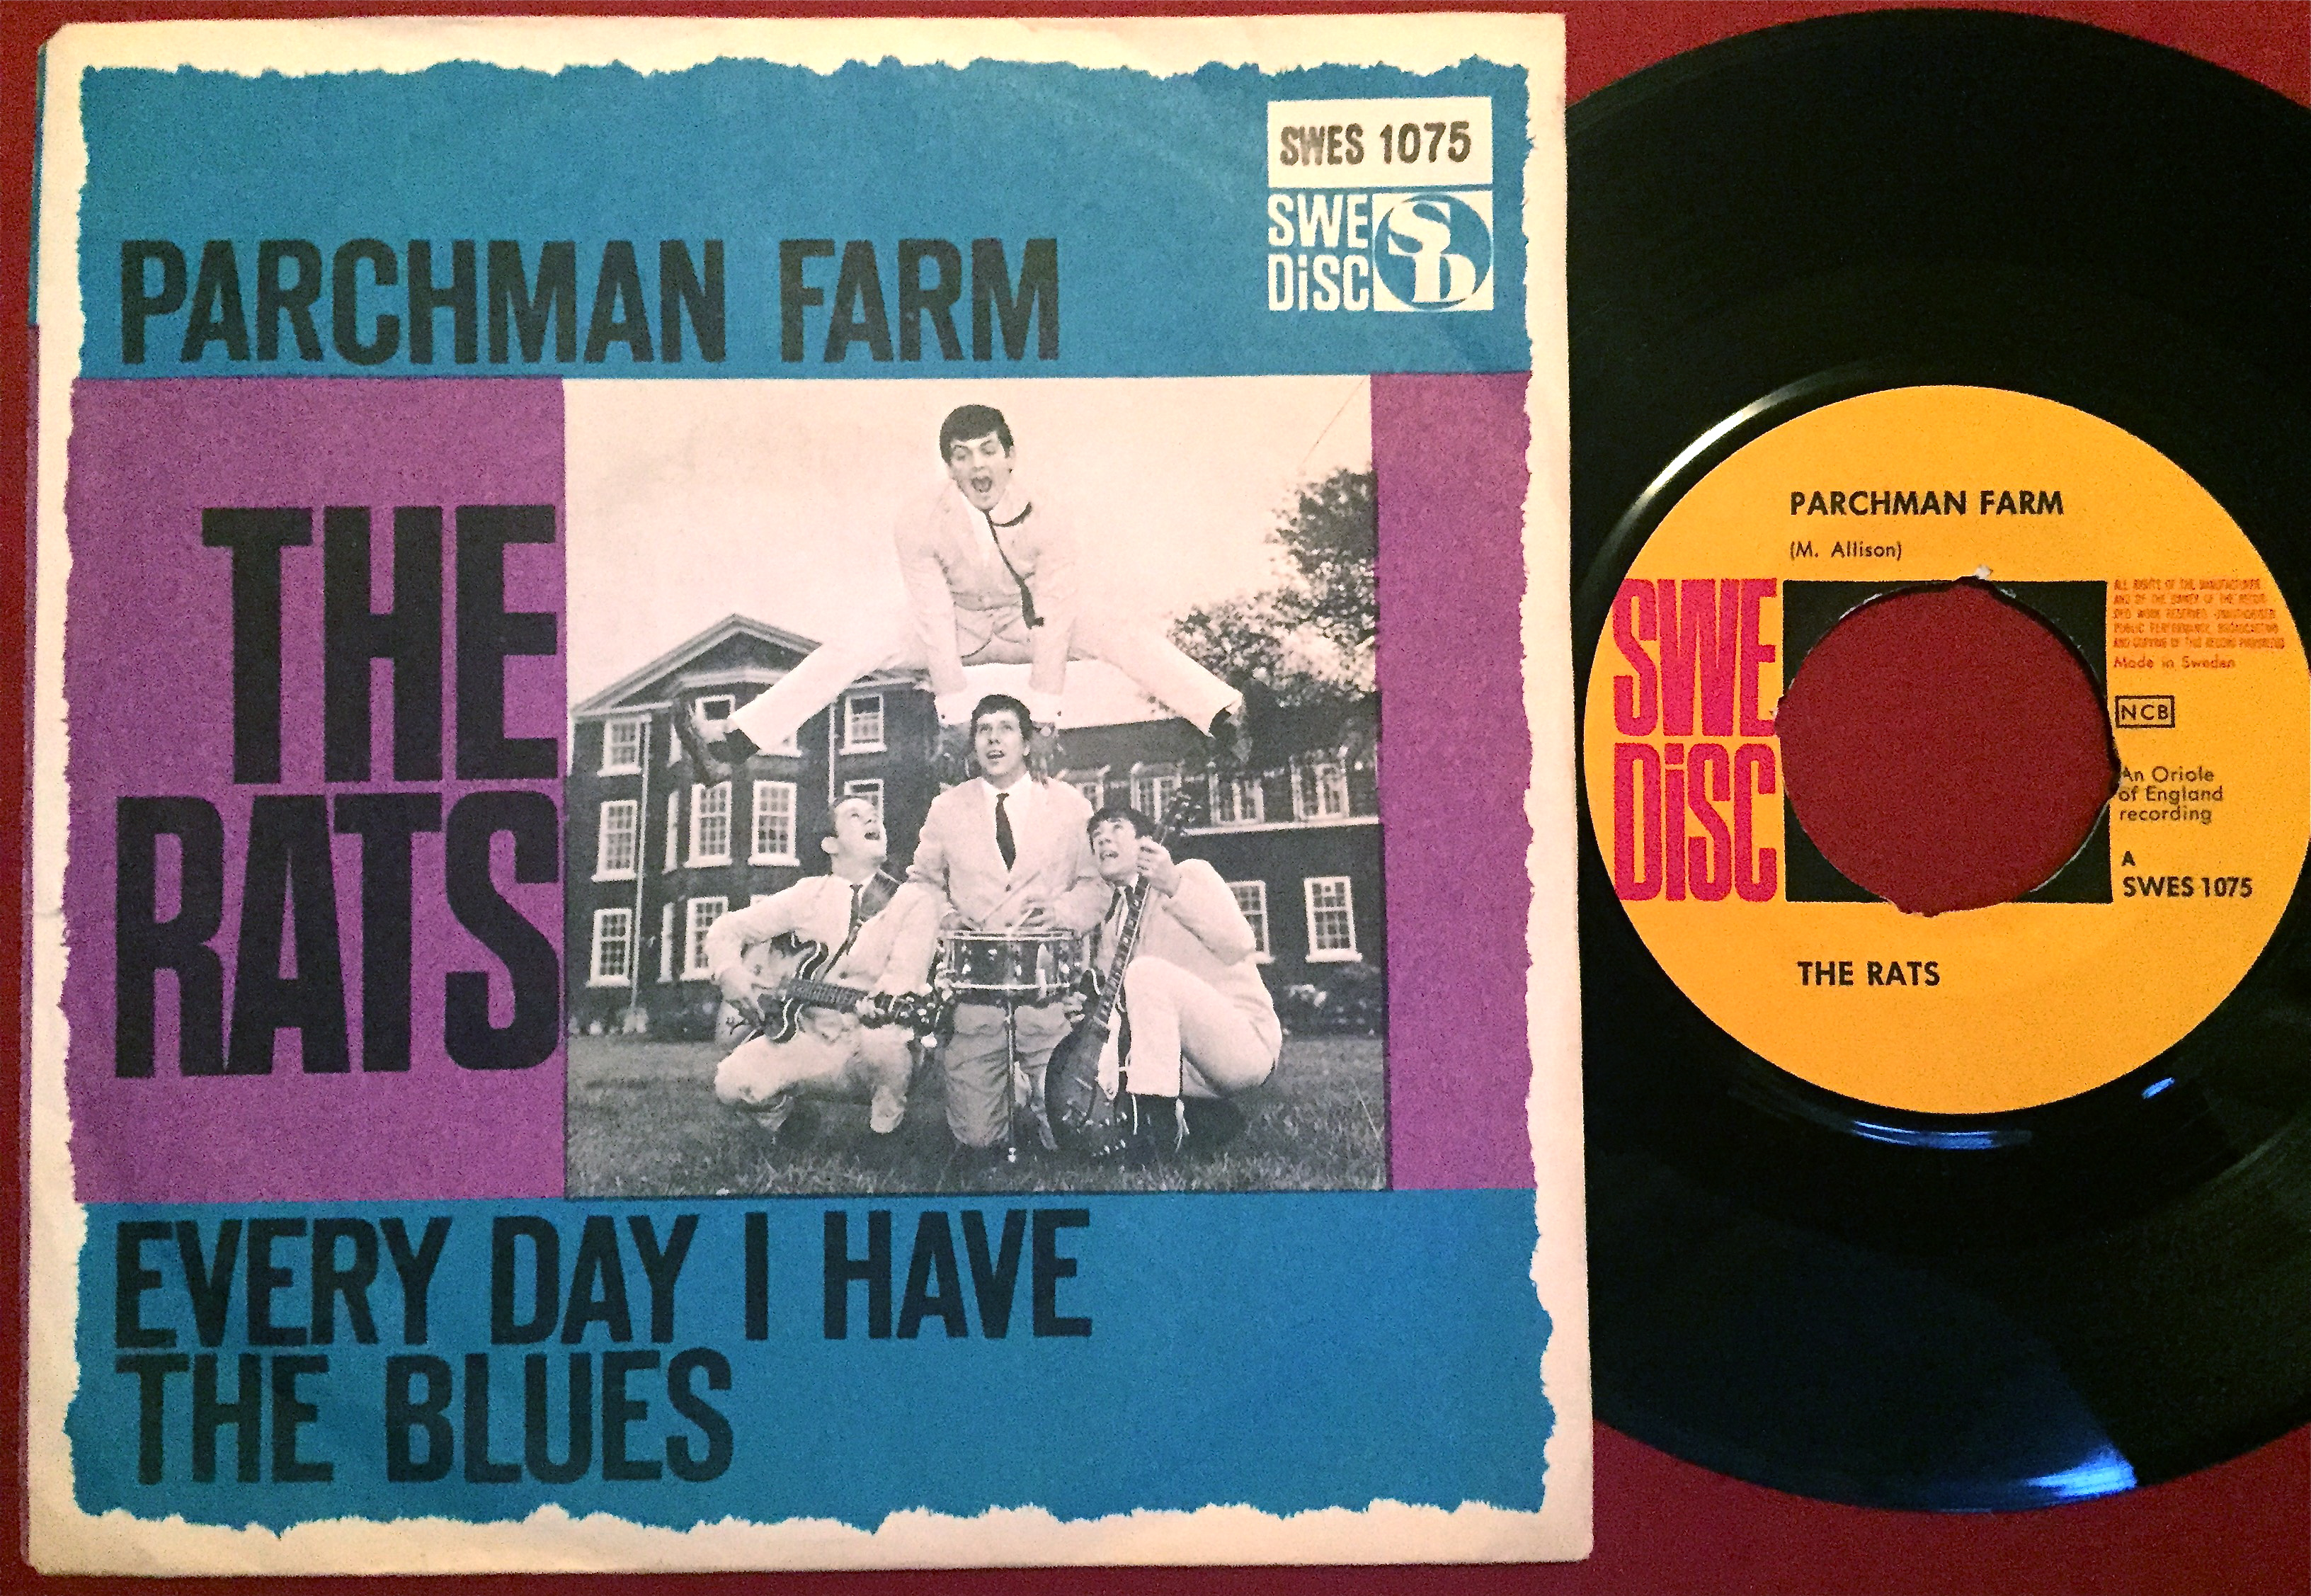 parchman latin singles Popular singles marino marini bukka white - parchman farm (1970) parchman farm 1937-1940 latin, french, italian folk other.